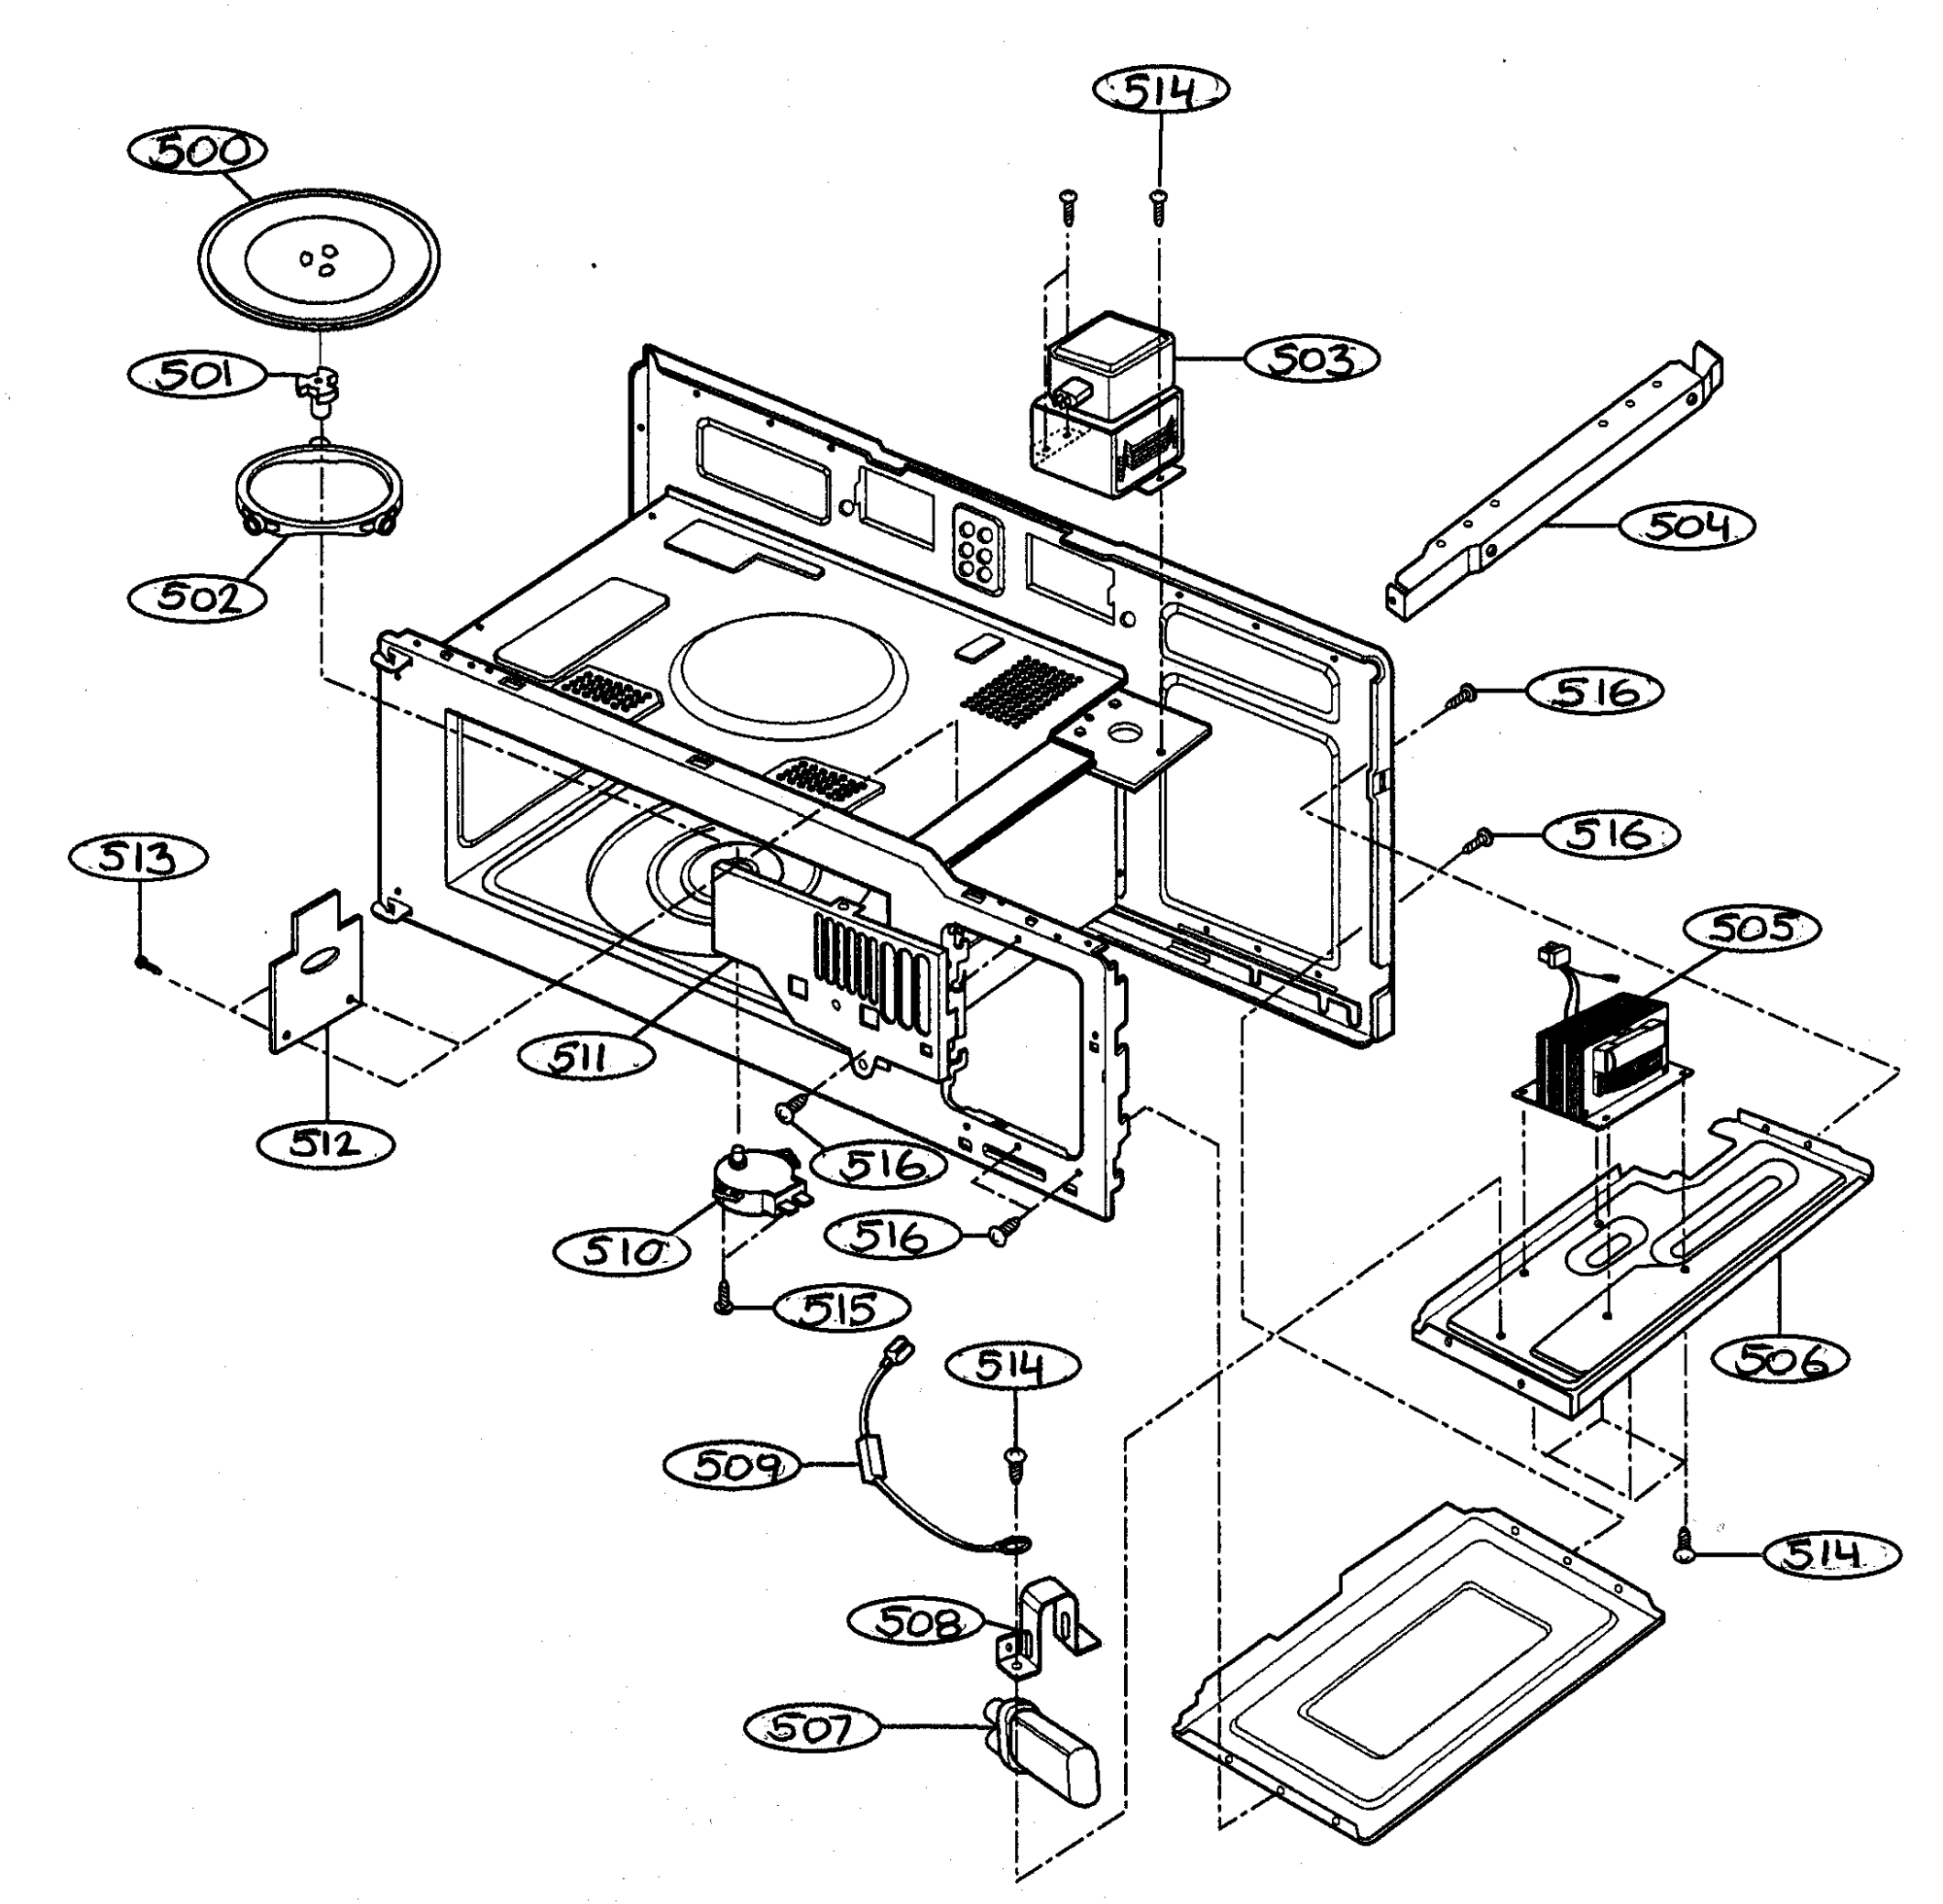 hight resolution of gold star microwave parts diagrams wiring